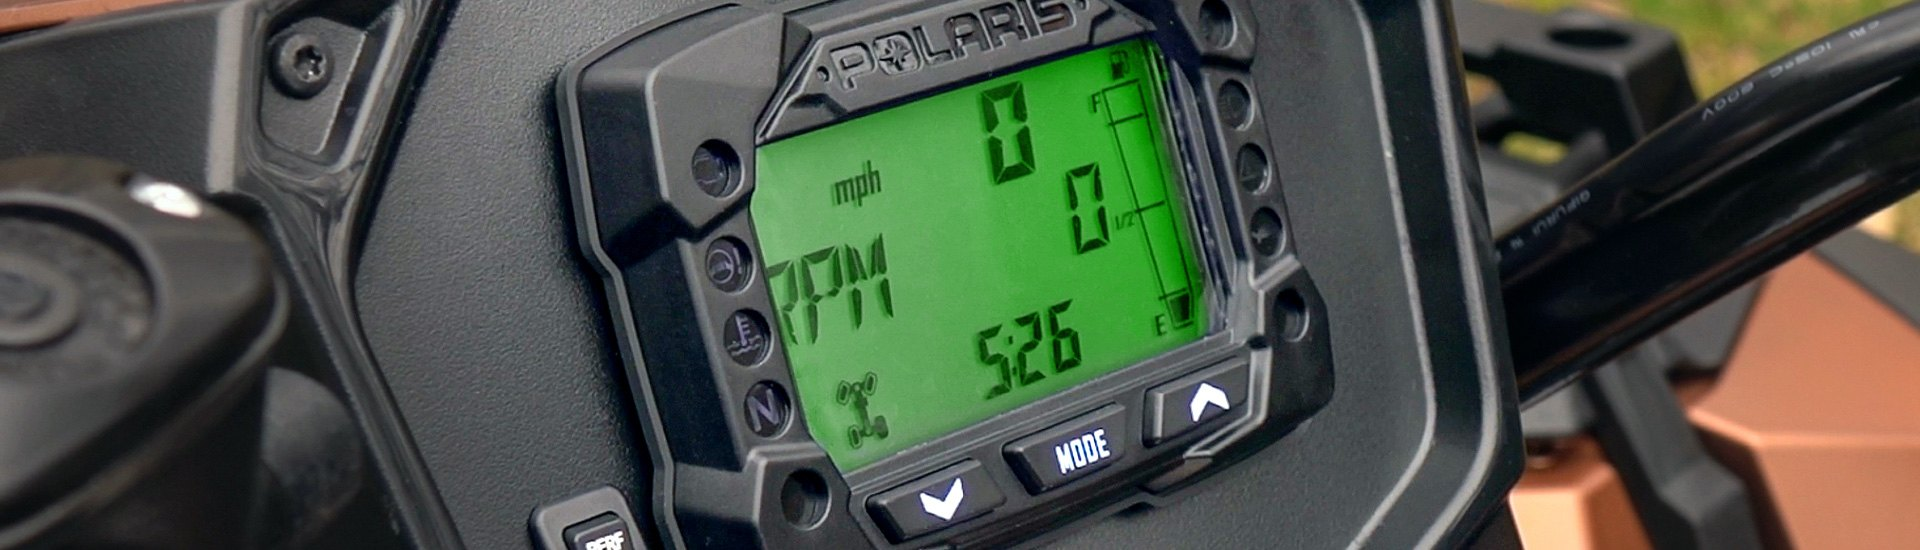 Polaris Powersports Dashboards & Gauges | Speedometers